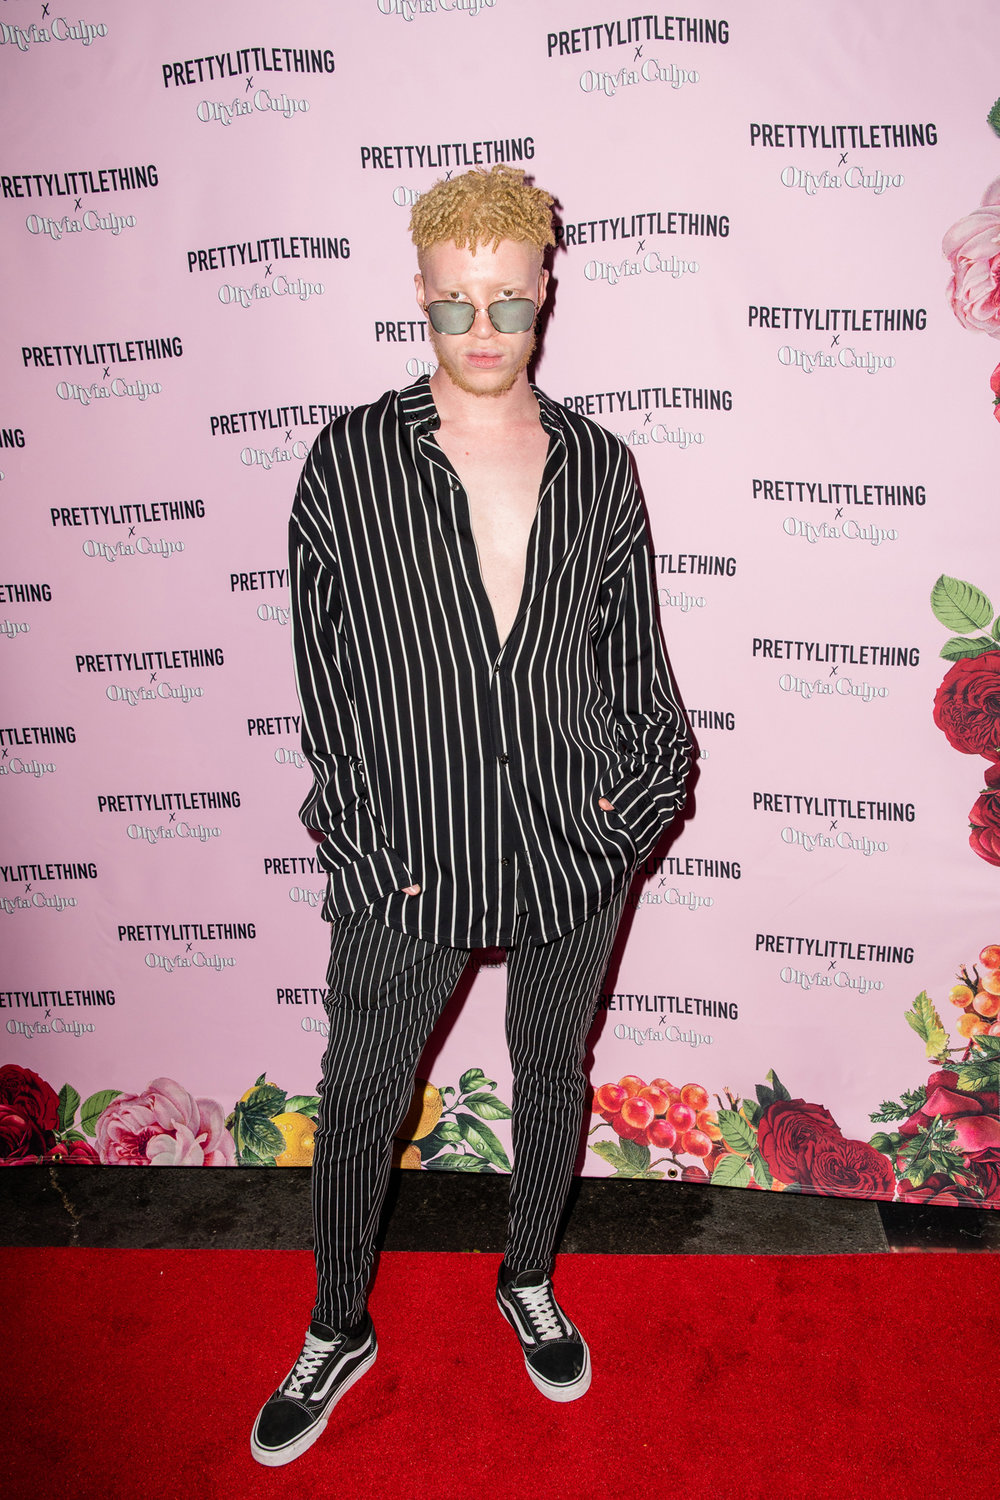 PrettyLittleThing PLT X Olivia Culpo Collection  Celebrity Launch Party Shaun Ross.jpg